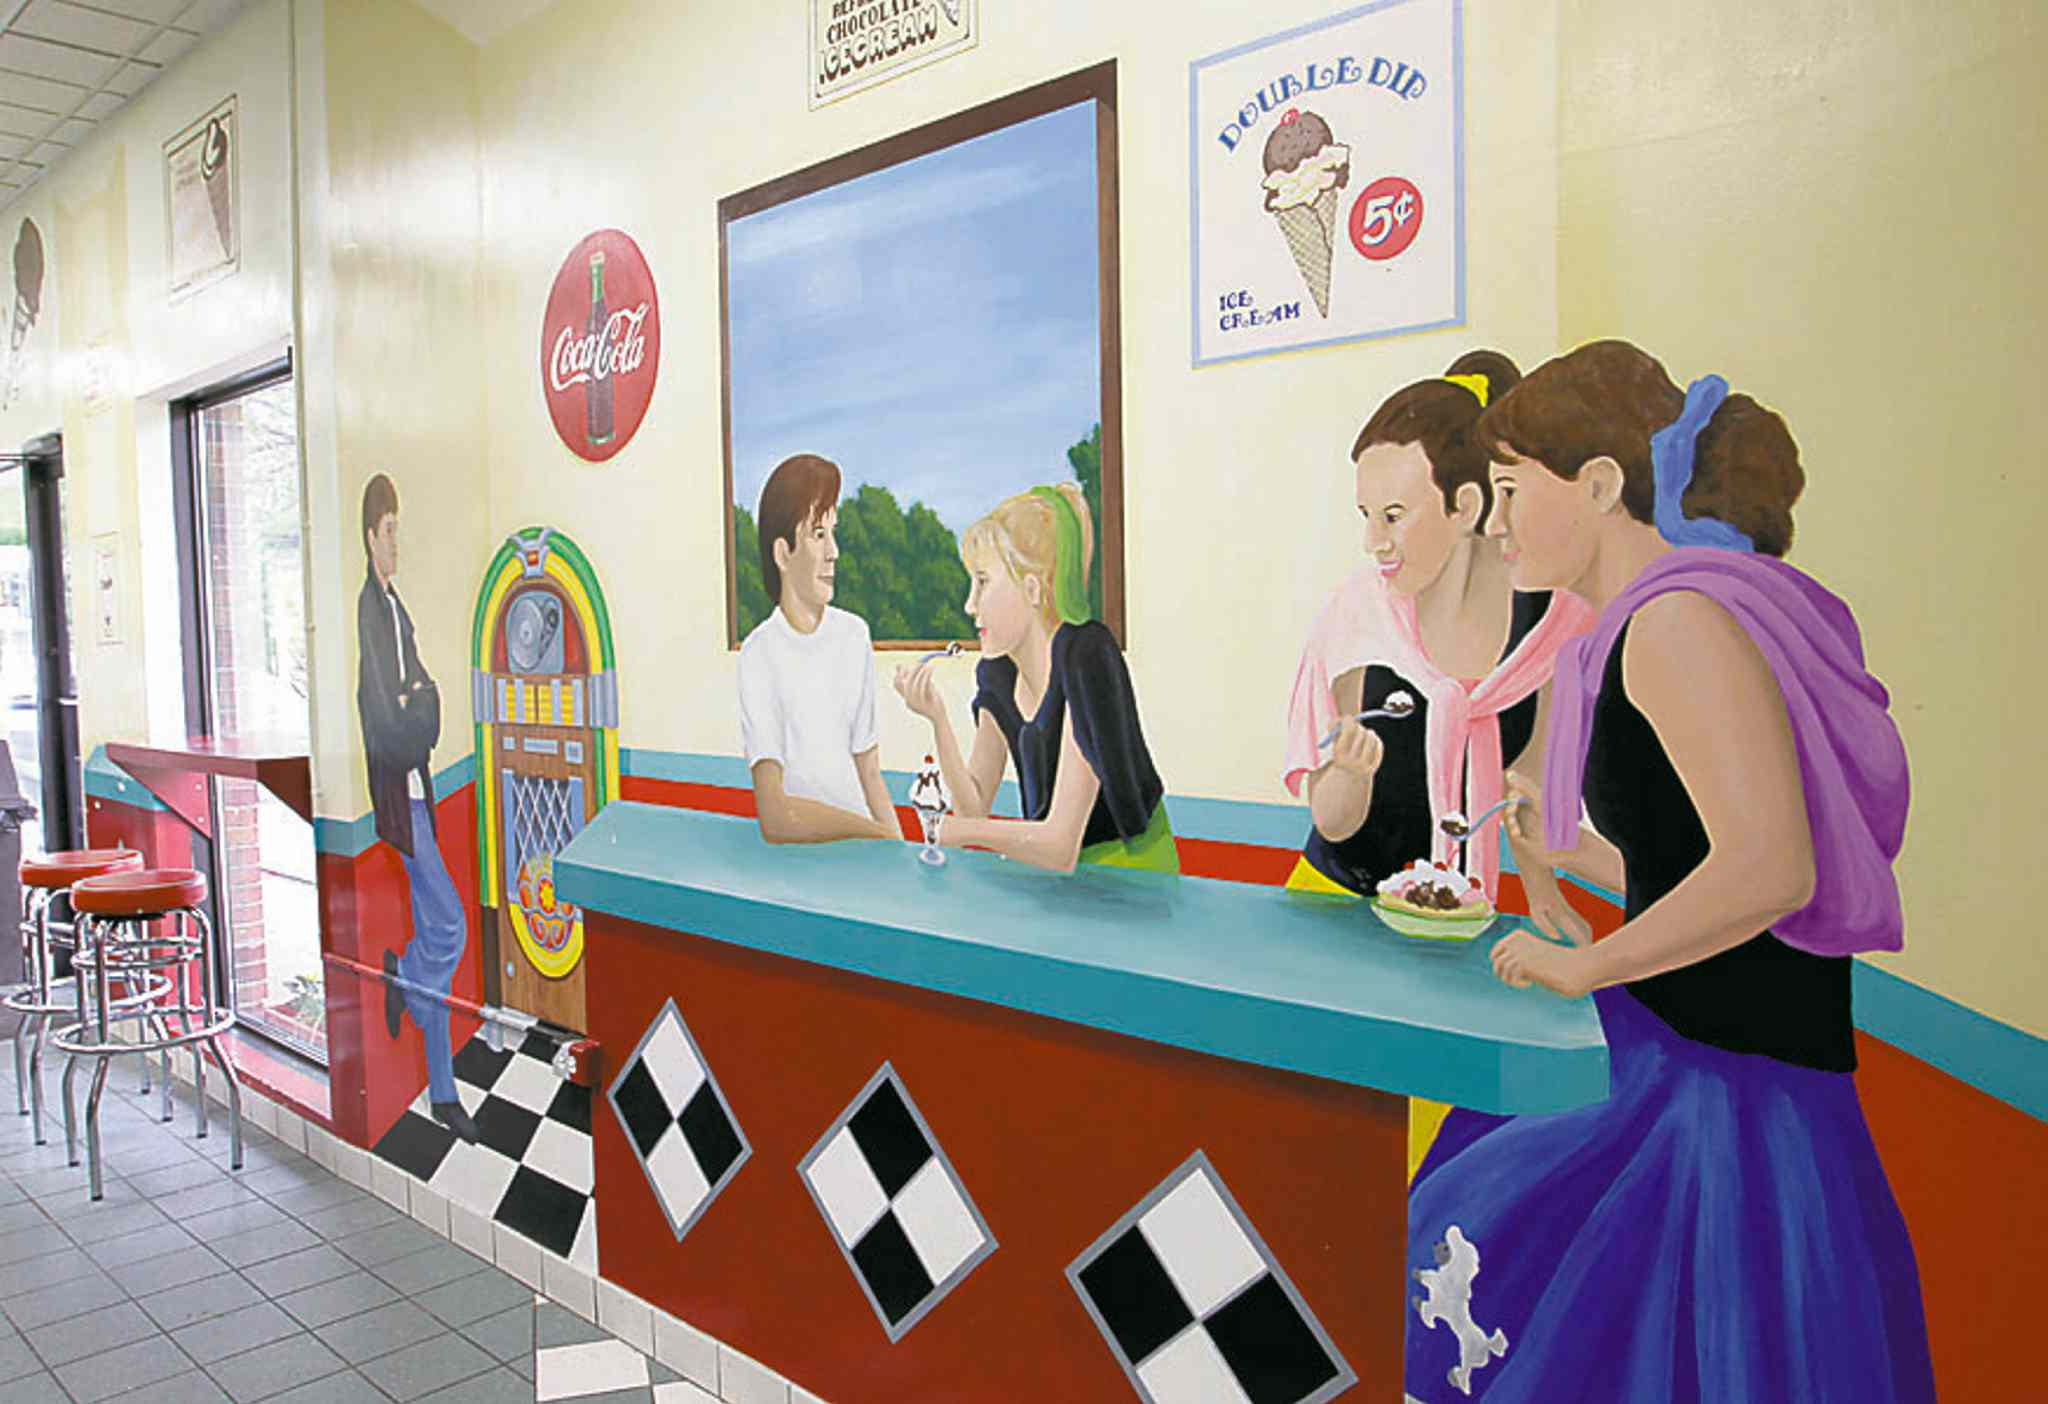 A large '50s-themed mural that suits the oldies music.